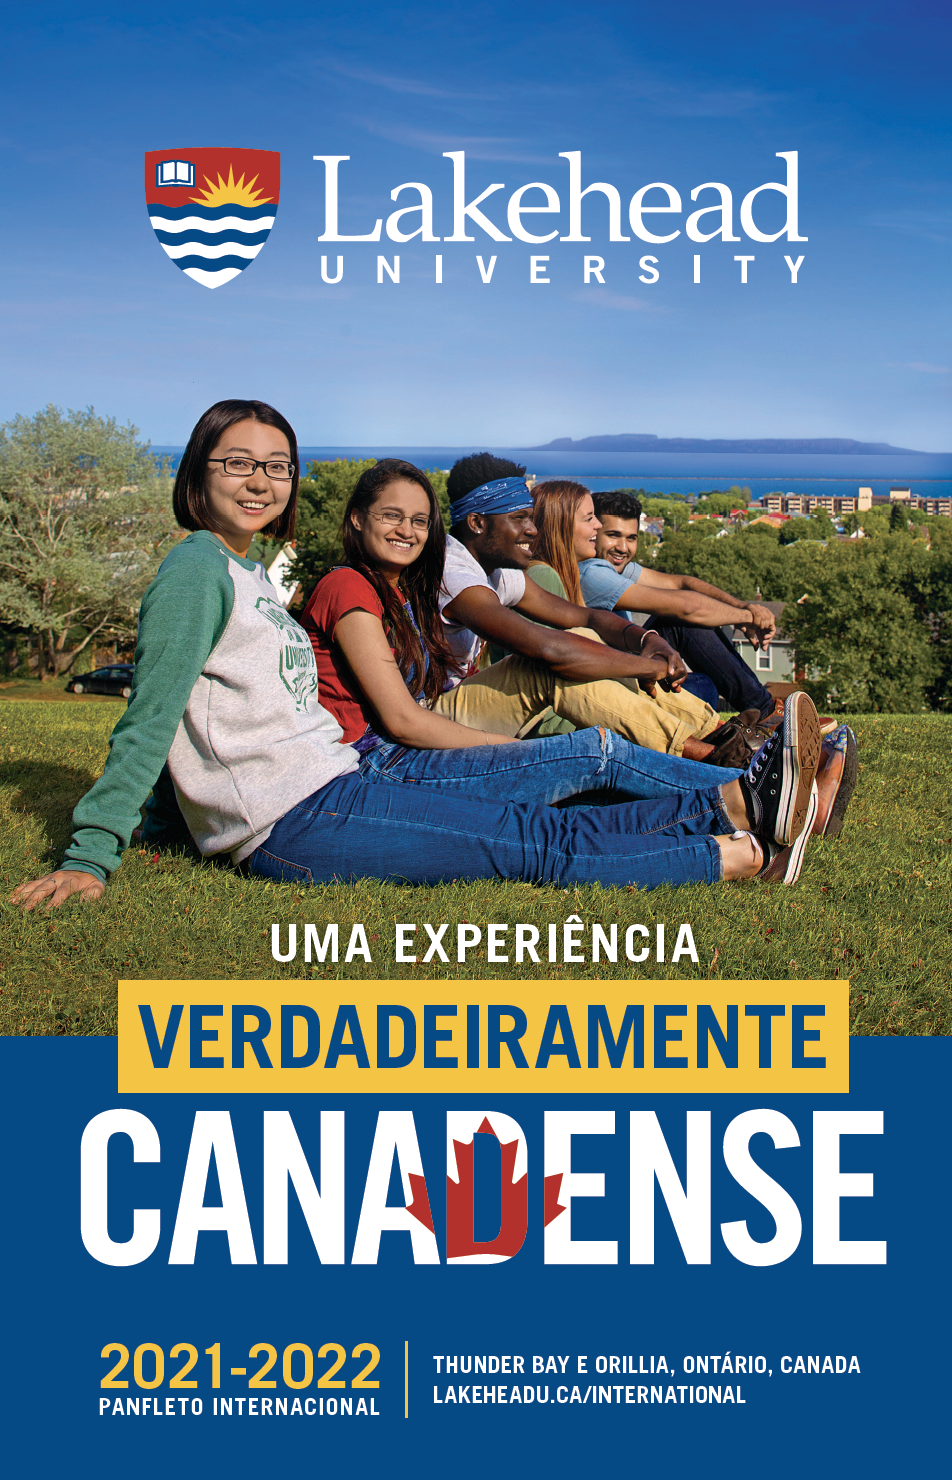 The cover of the 2021 Lakehead International Brochure in Portuguese.